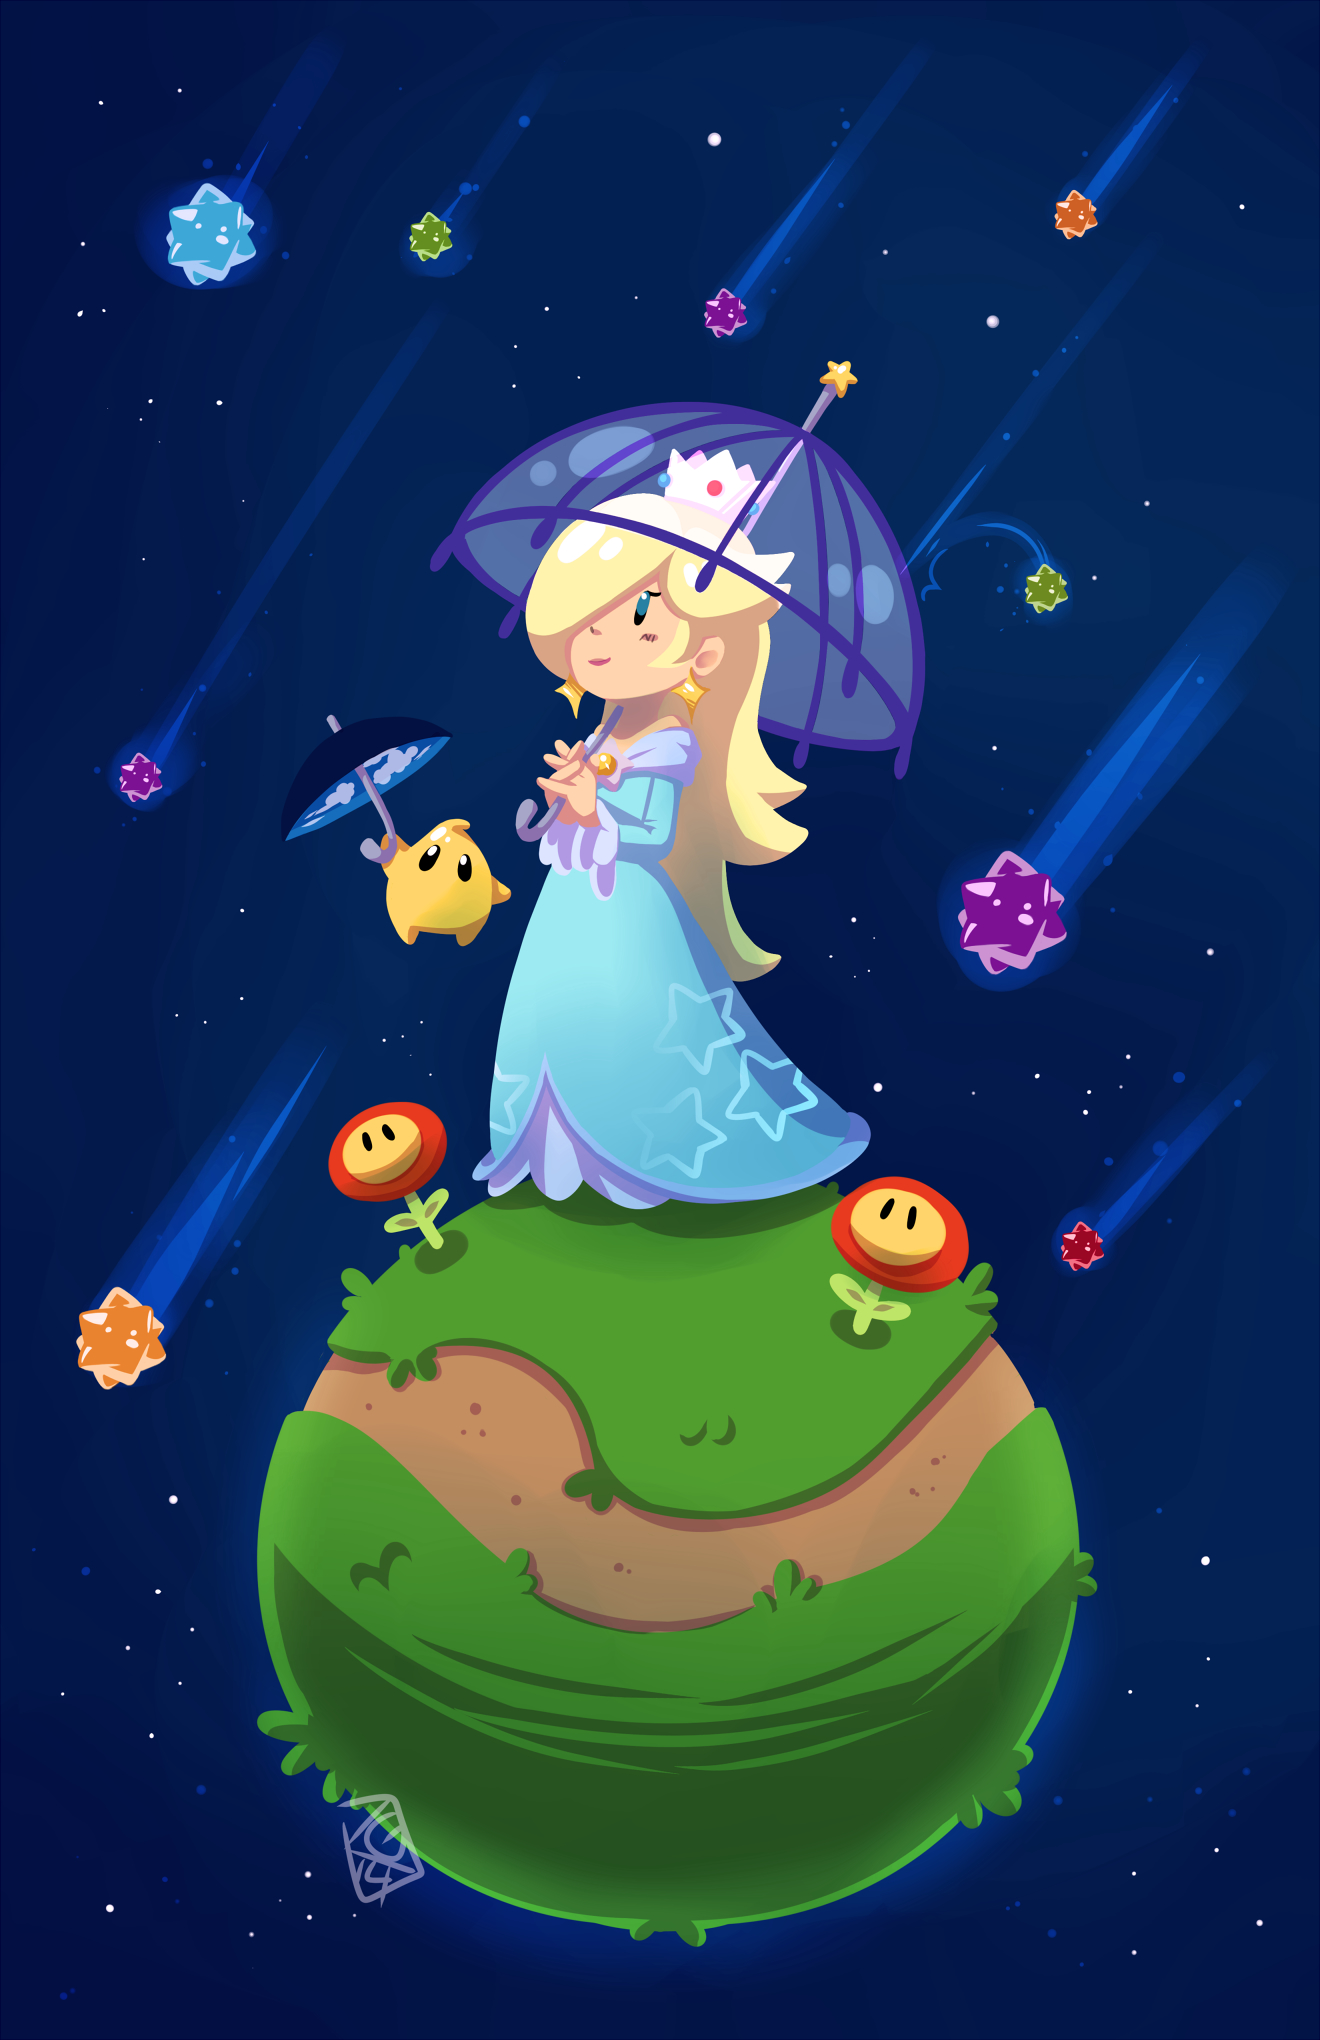 Super Mario Galaxy Mobile Wallpaper Zerochan Anime Image